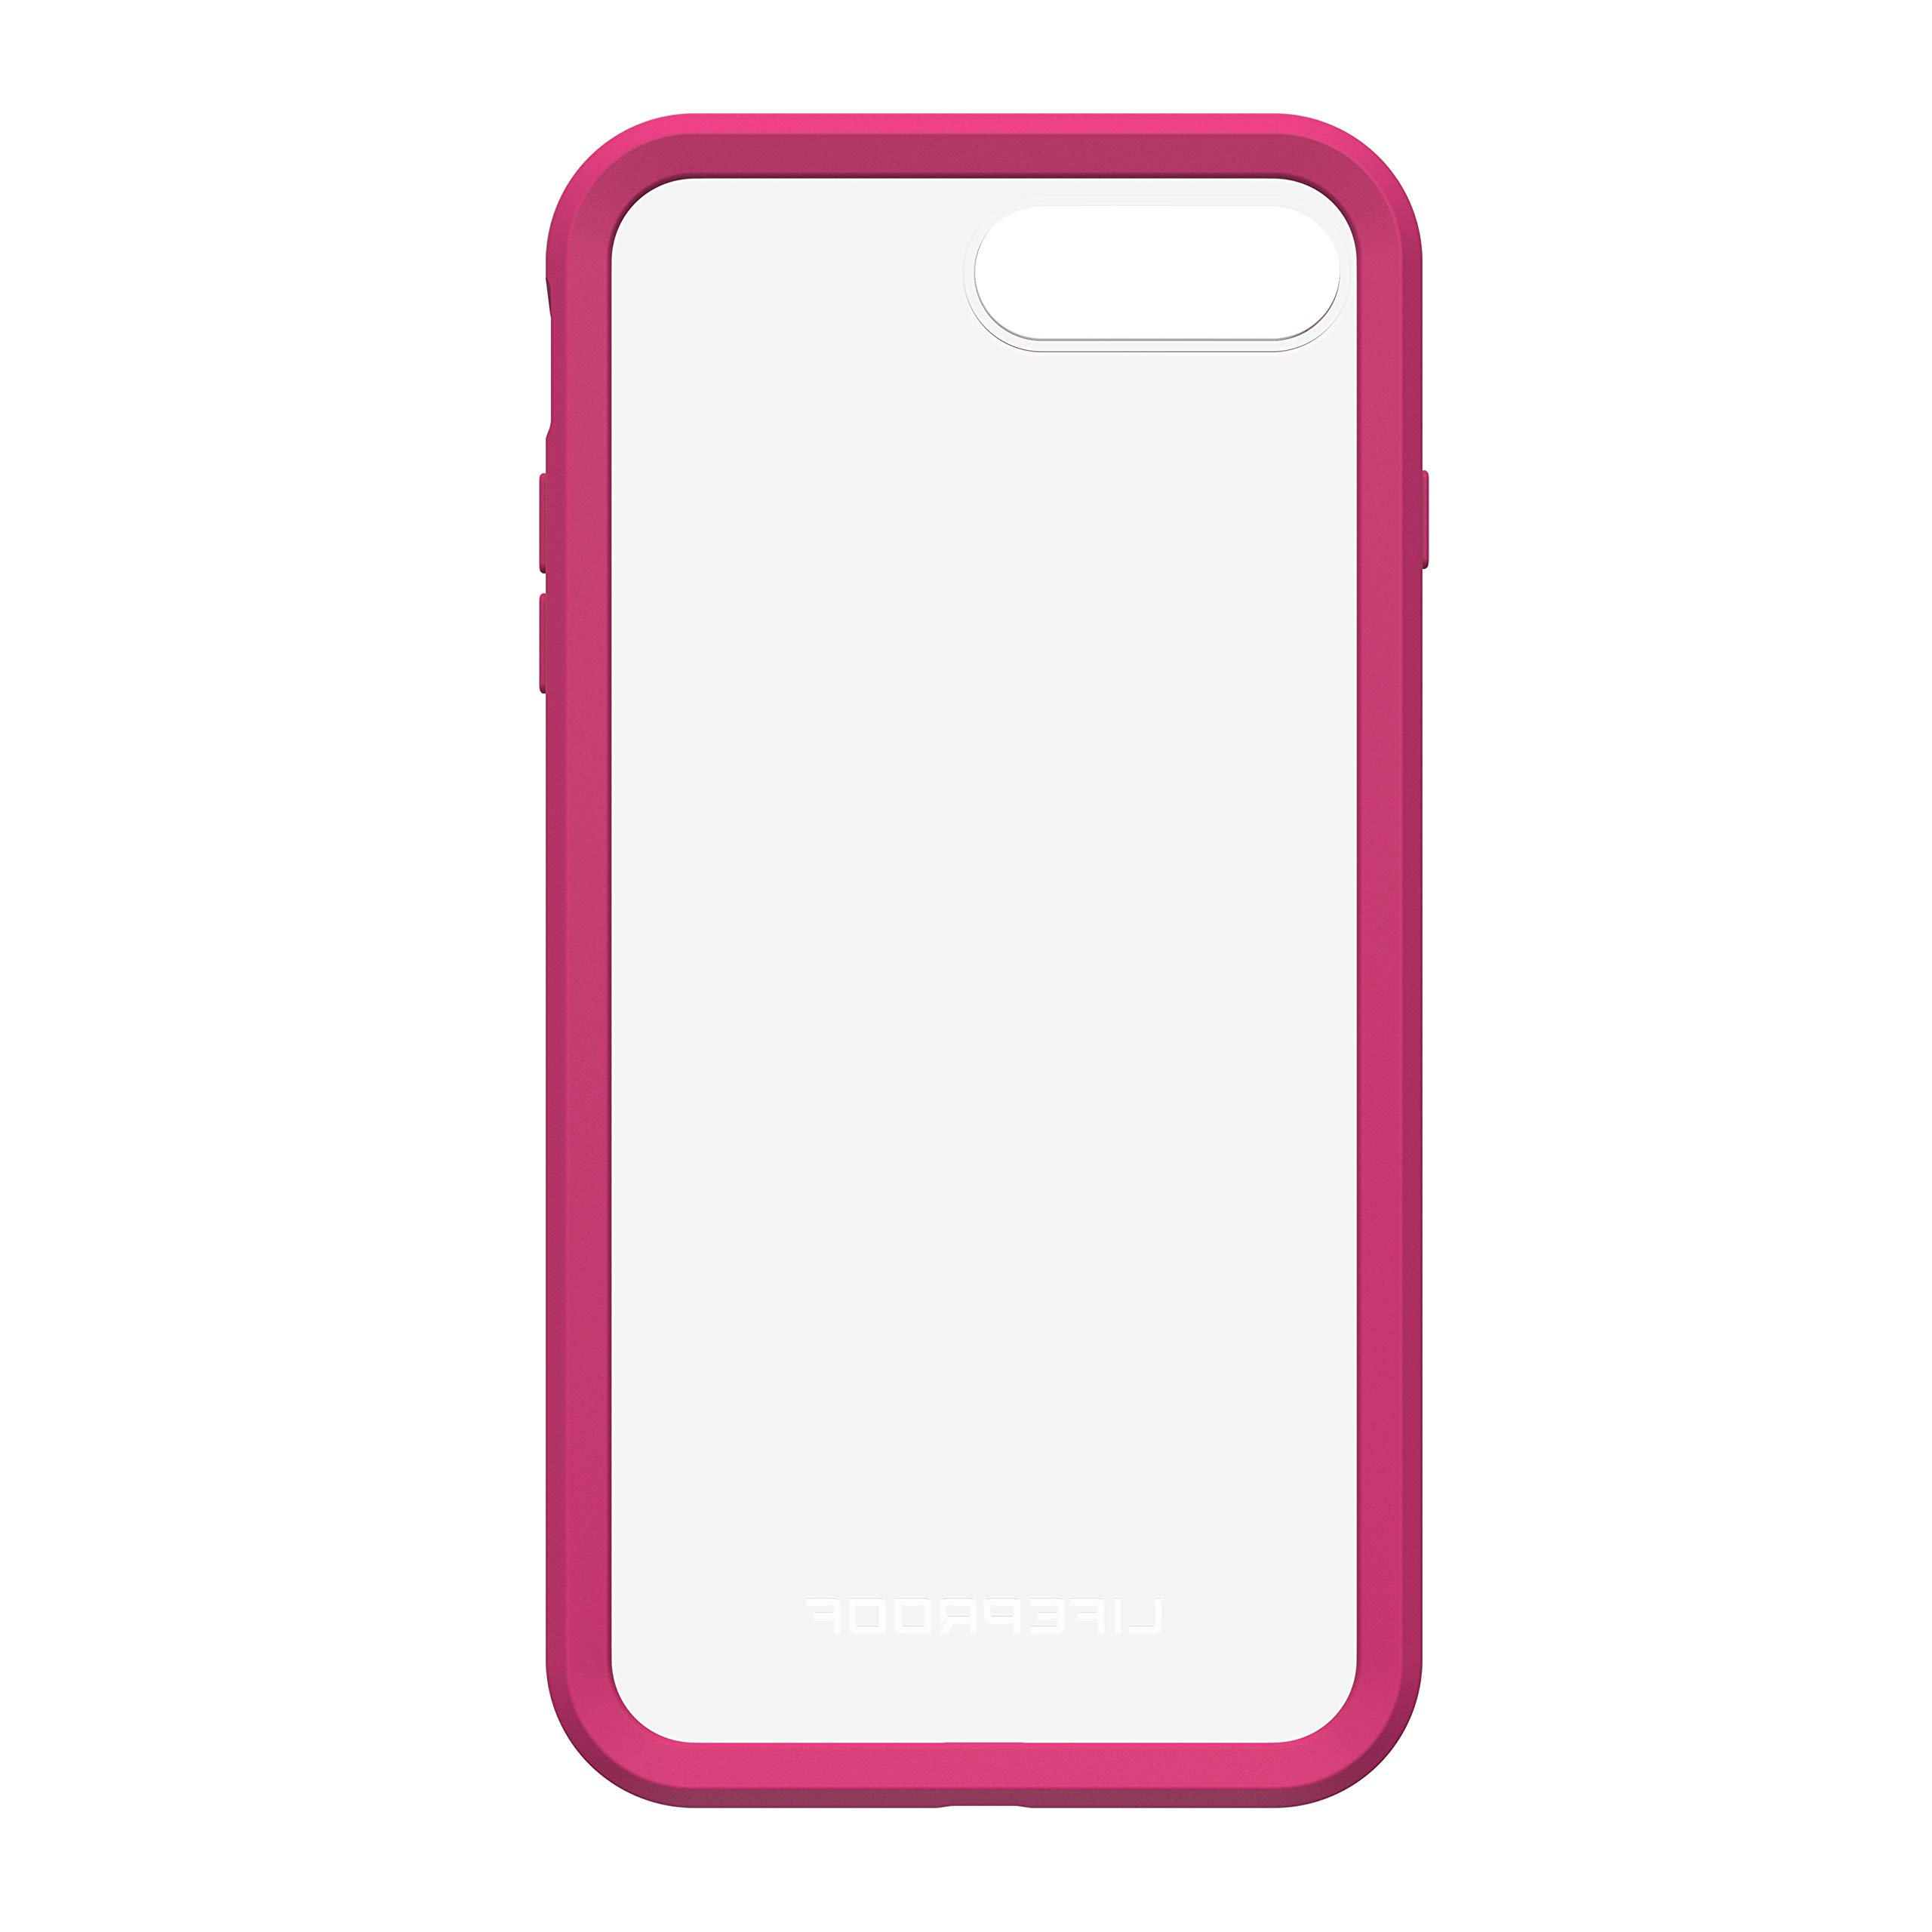 Lifeproof SLAM Series Case for iPhone 8 Plus & 7 Plus (ONLY) - Retail Packaging - Aloha Sunset (Clear/Blue Tint/Process Magenta) by LifeProof (Image #3)